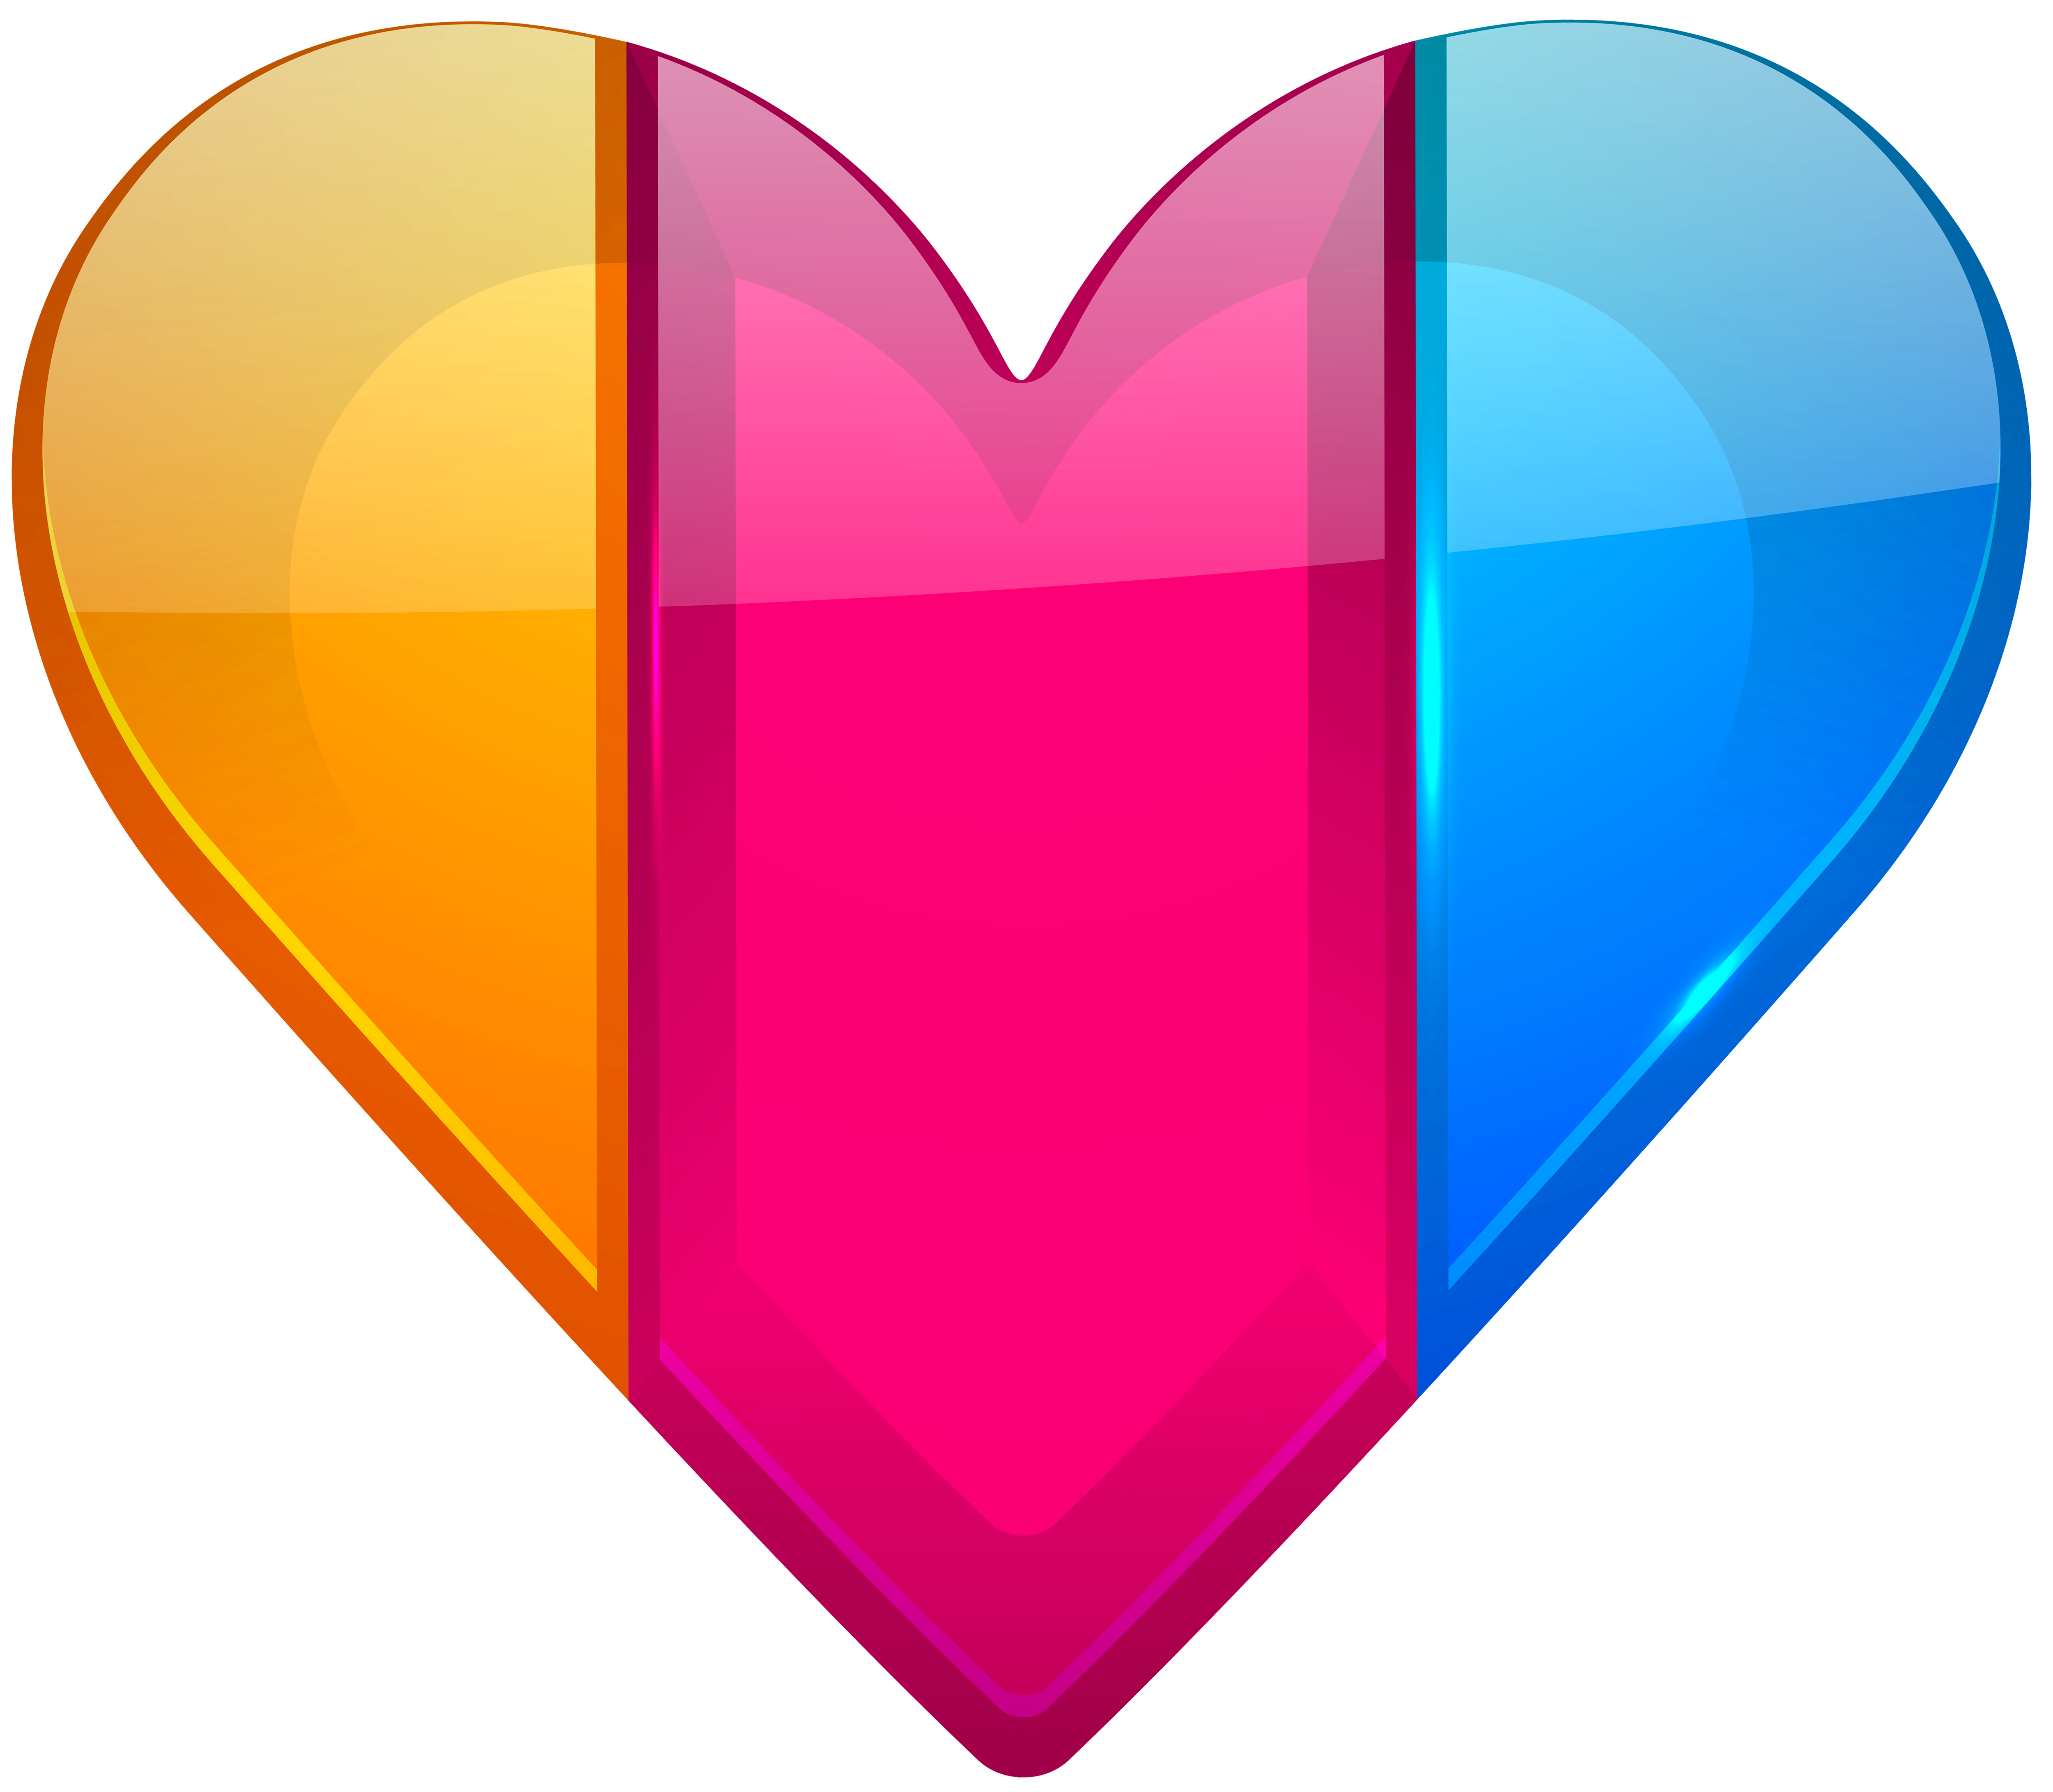 Colorful Heart PNG Clipart.